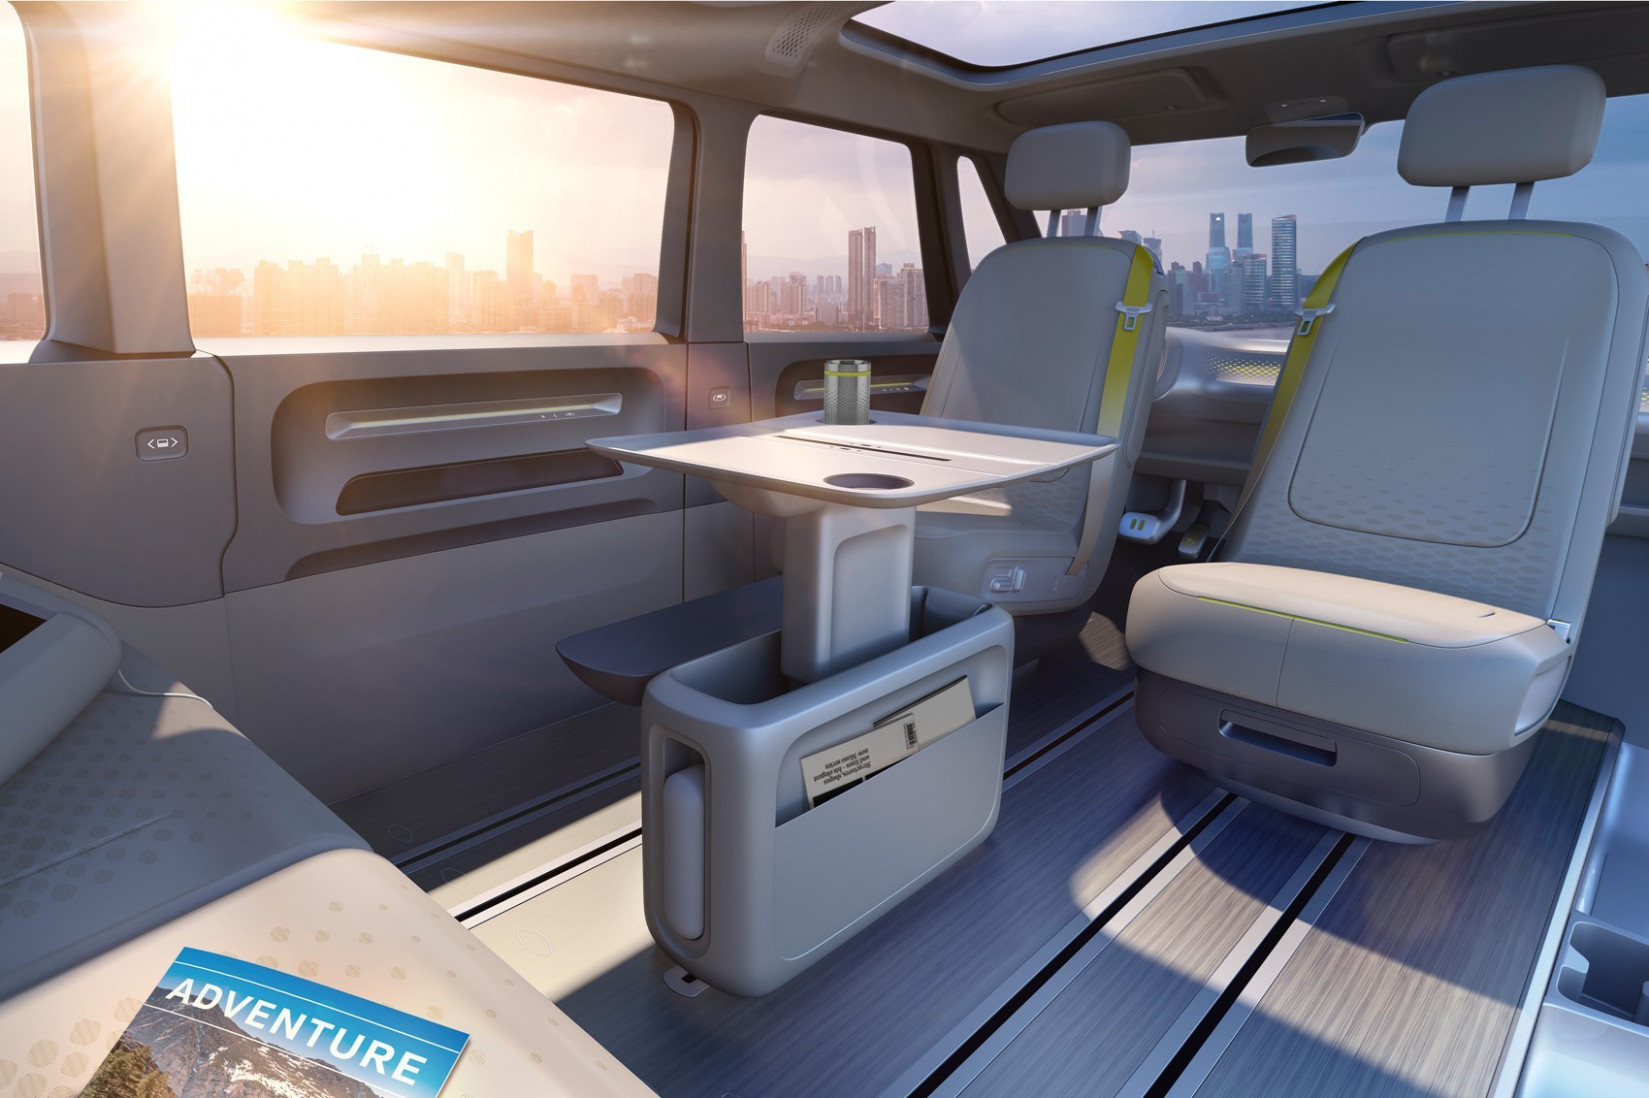 Exterior and Interior Volkswagen California 2022